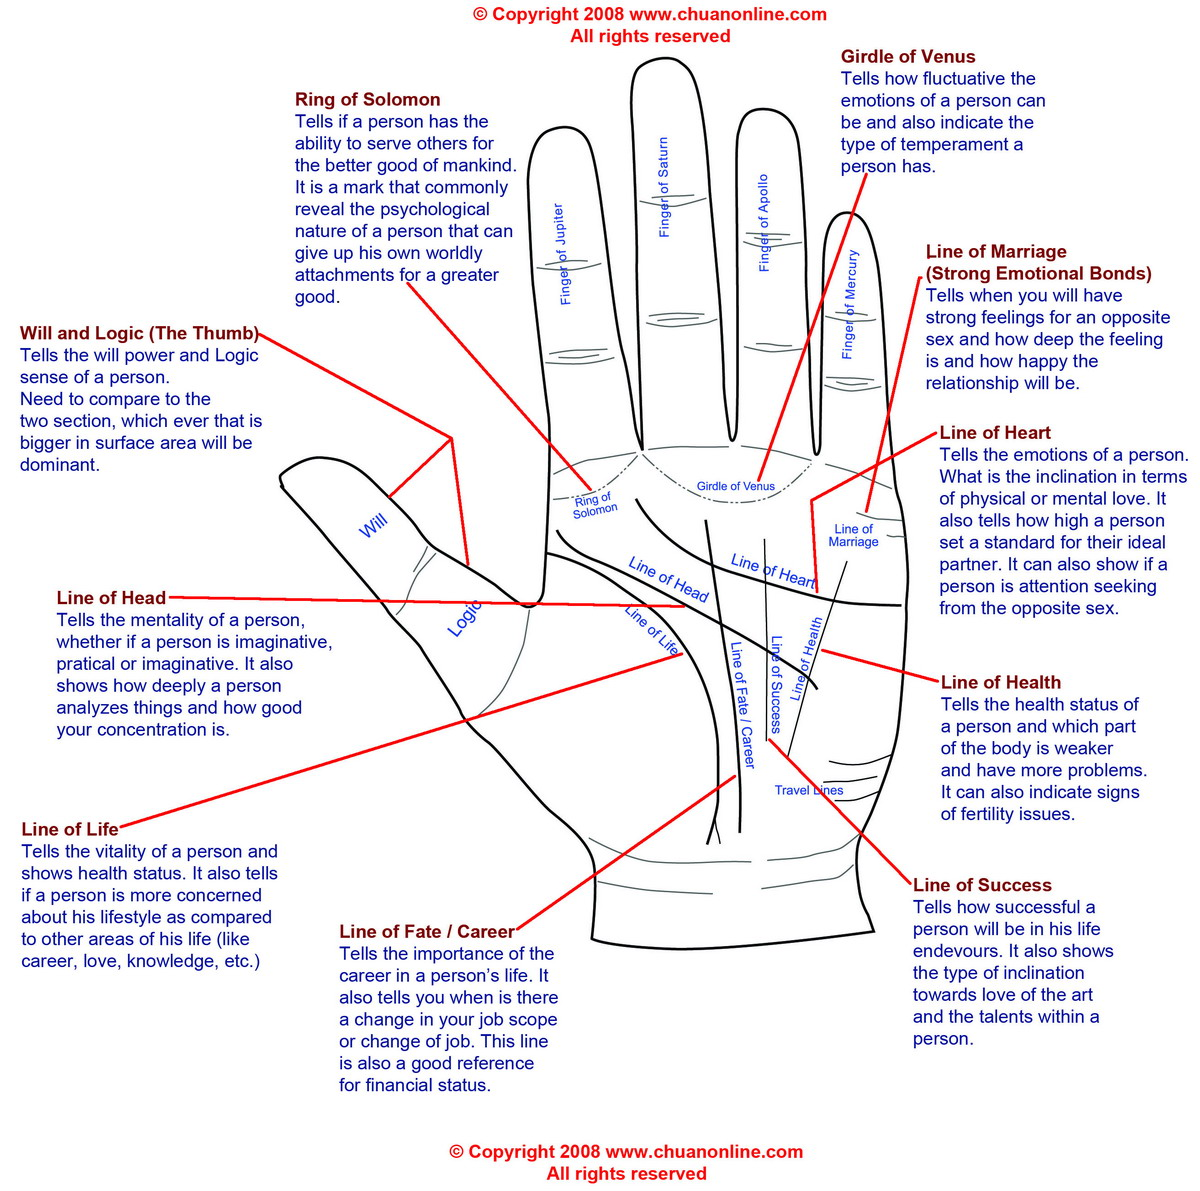 Free Palmistry Diagram for Download, Palm Reading, ChuanOnline.com